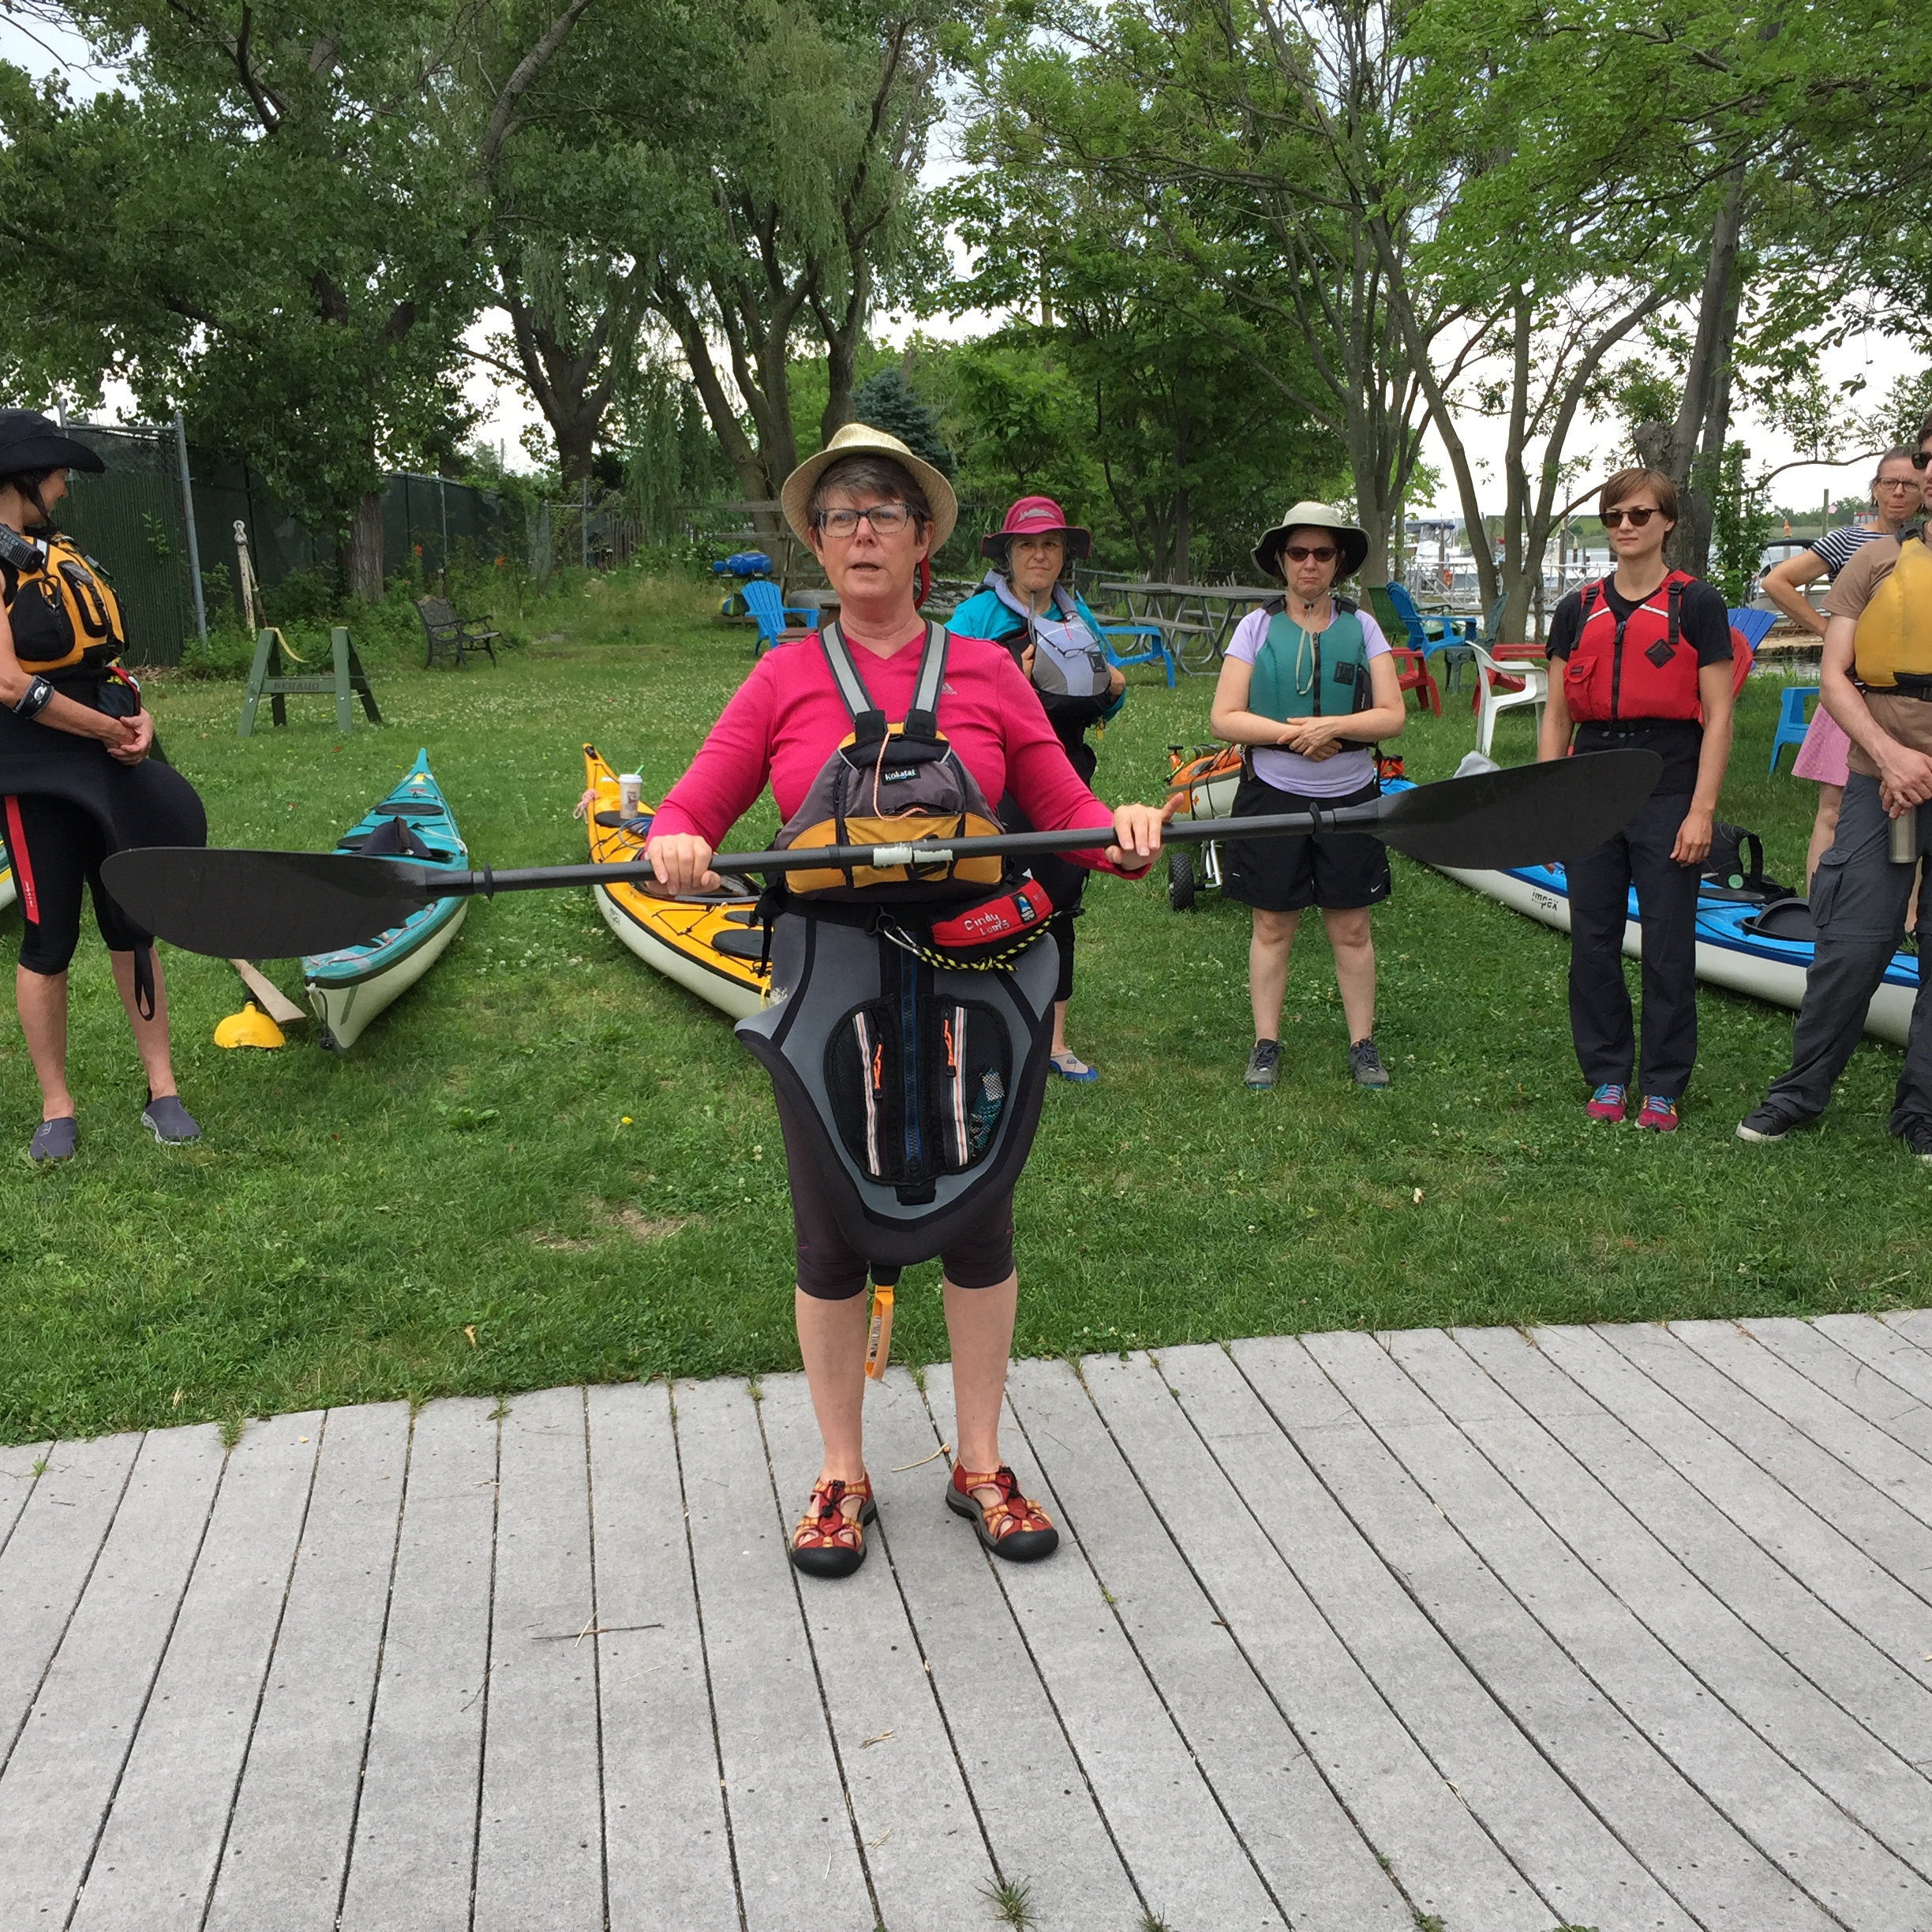 Kayaking 101 - how to hold your paddle